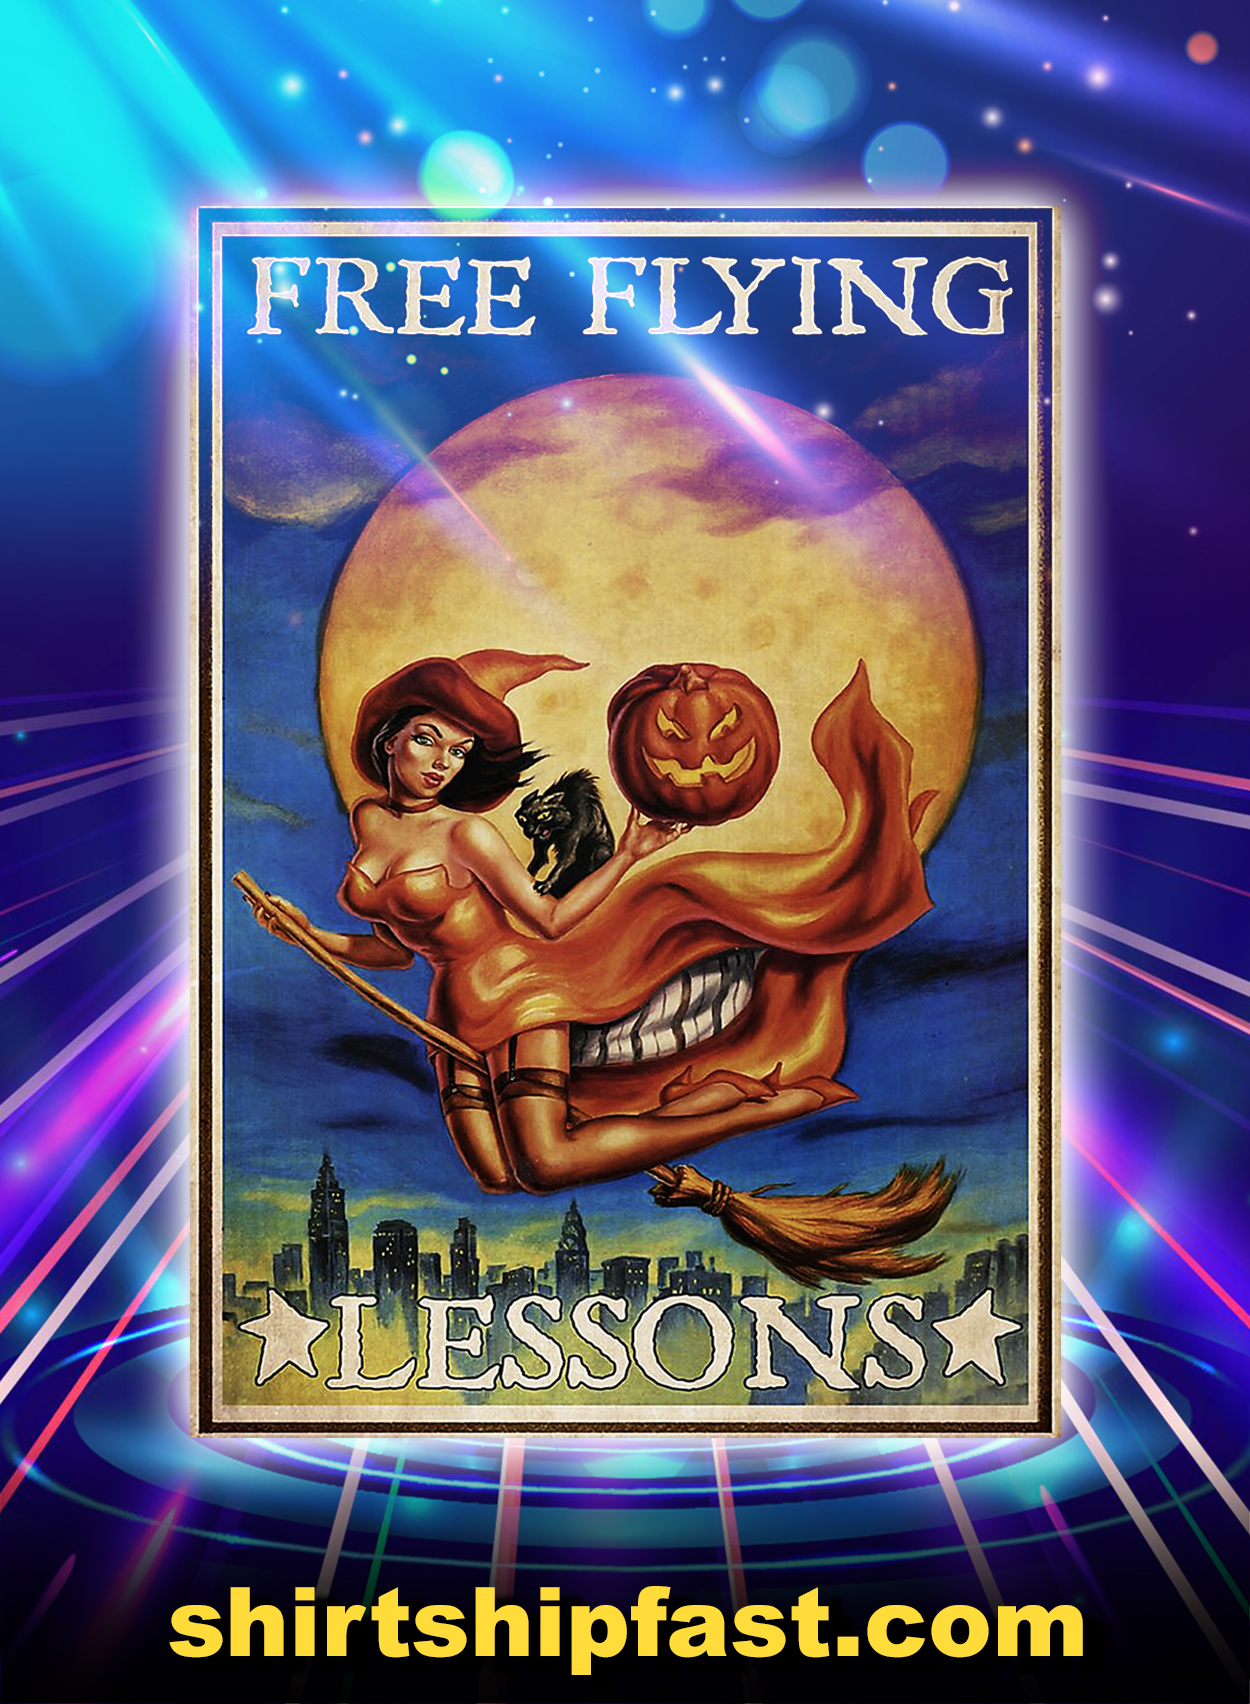 Free flying lessons poster - A2